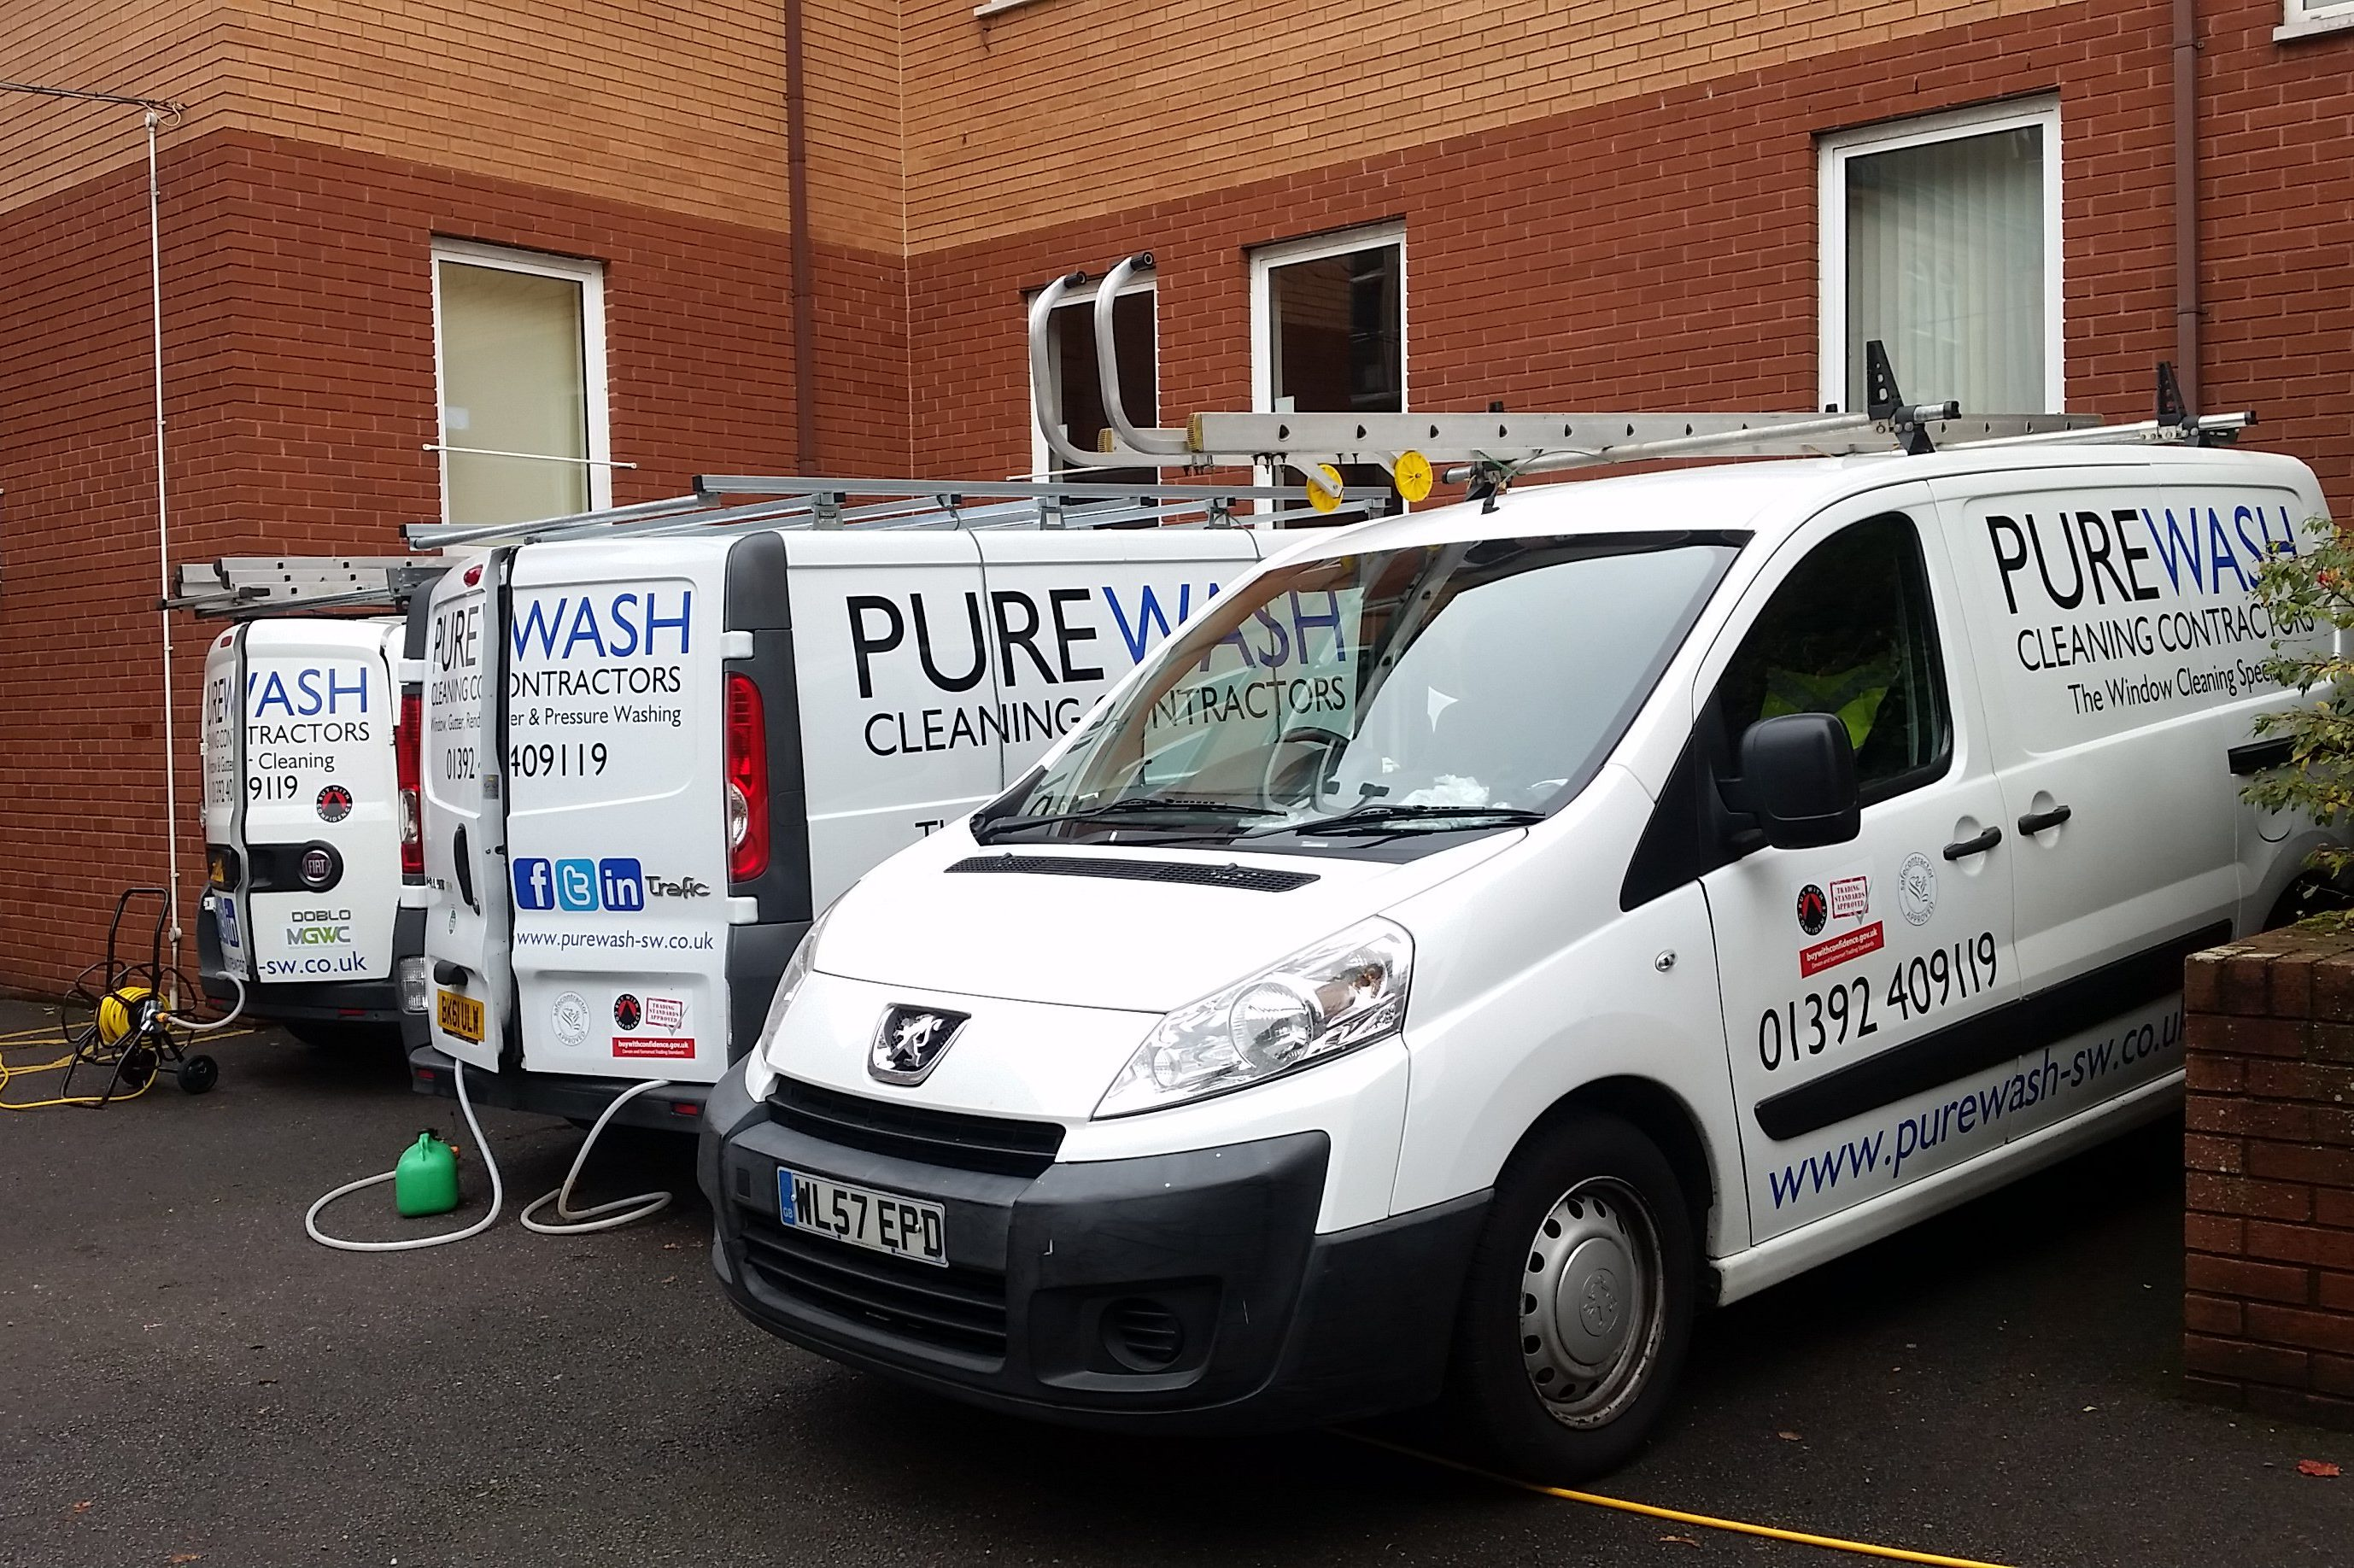 About PureWash Cleaning Contractors